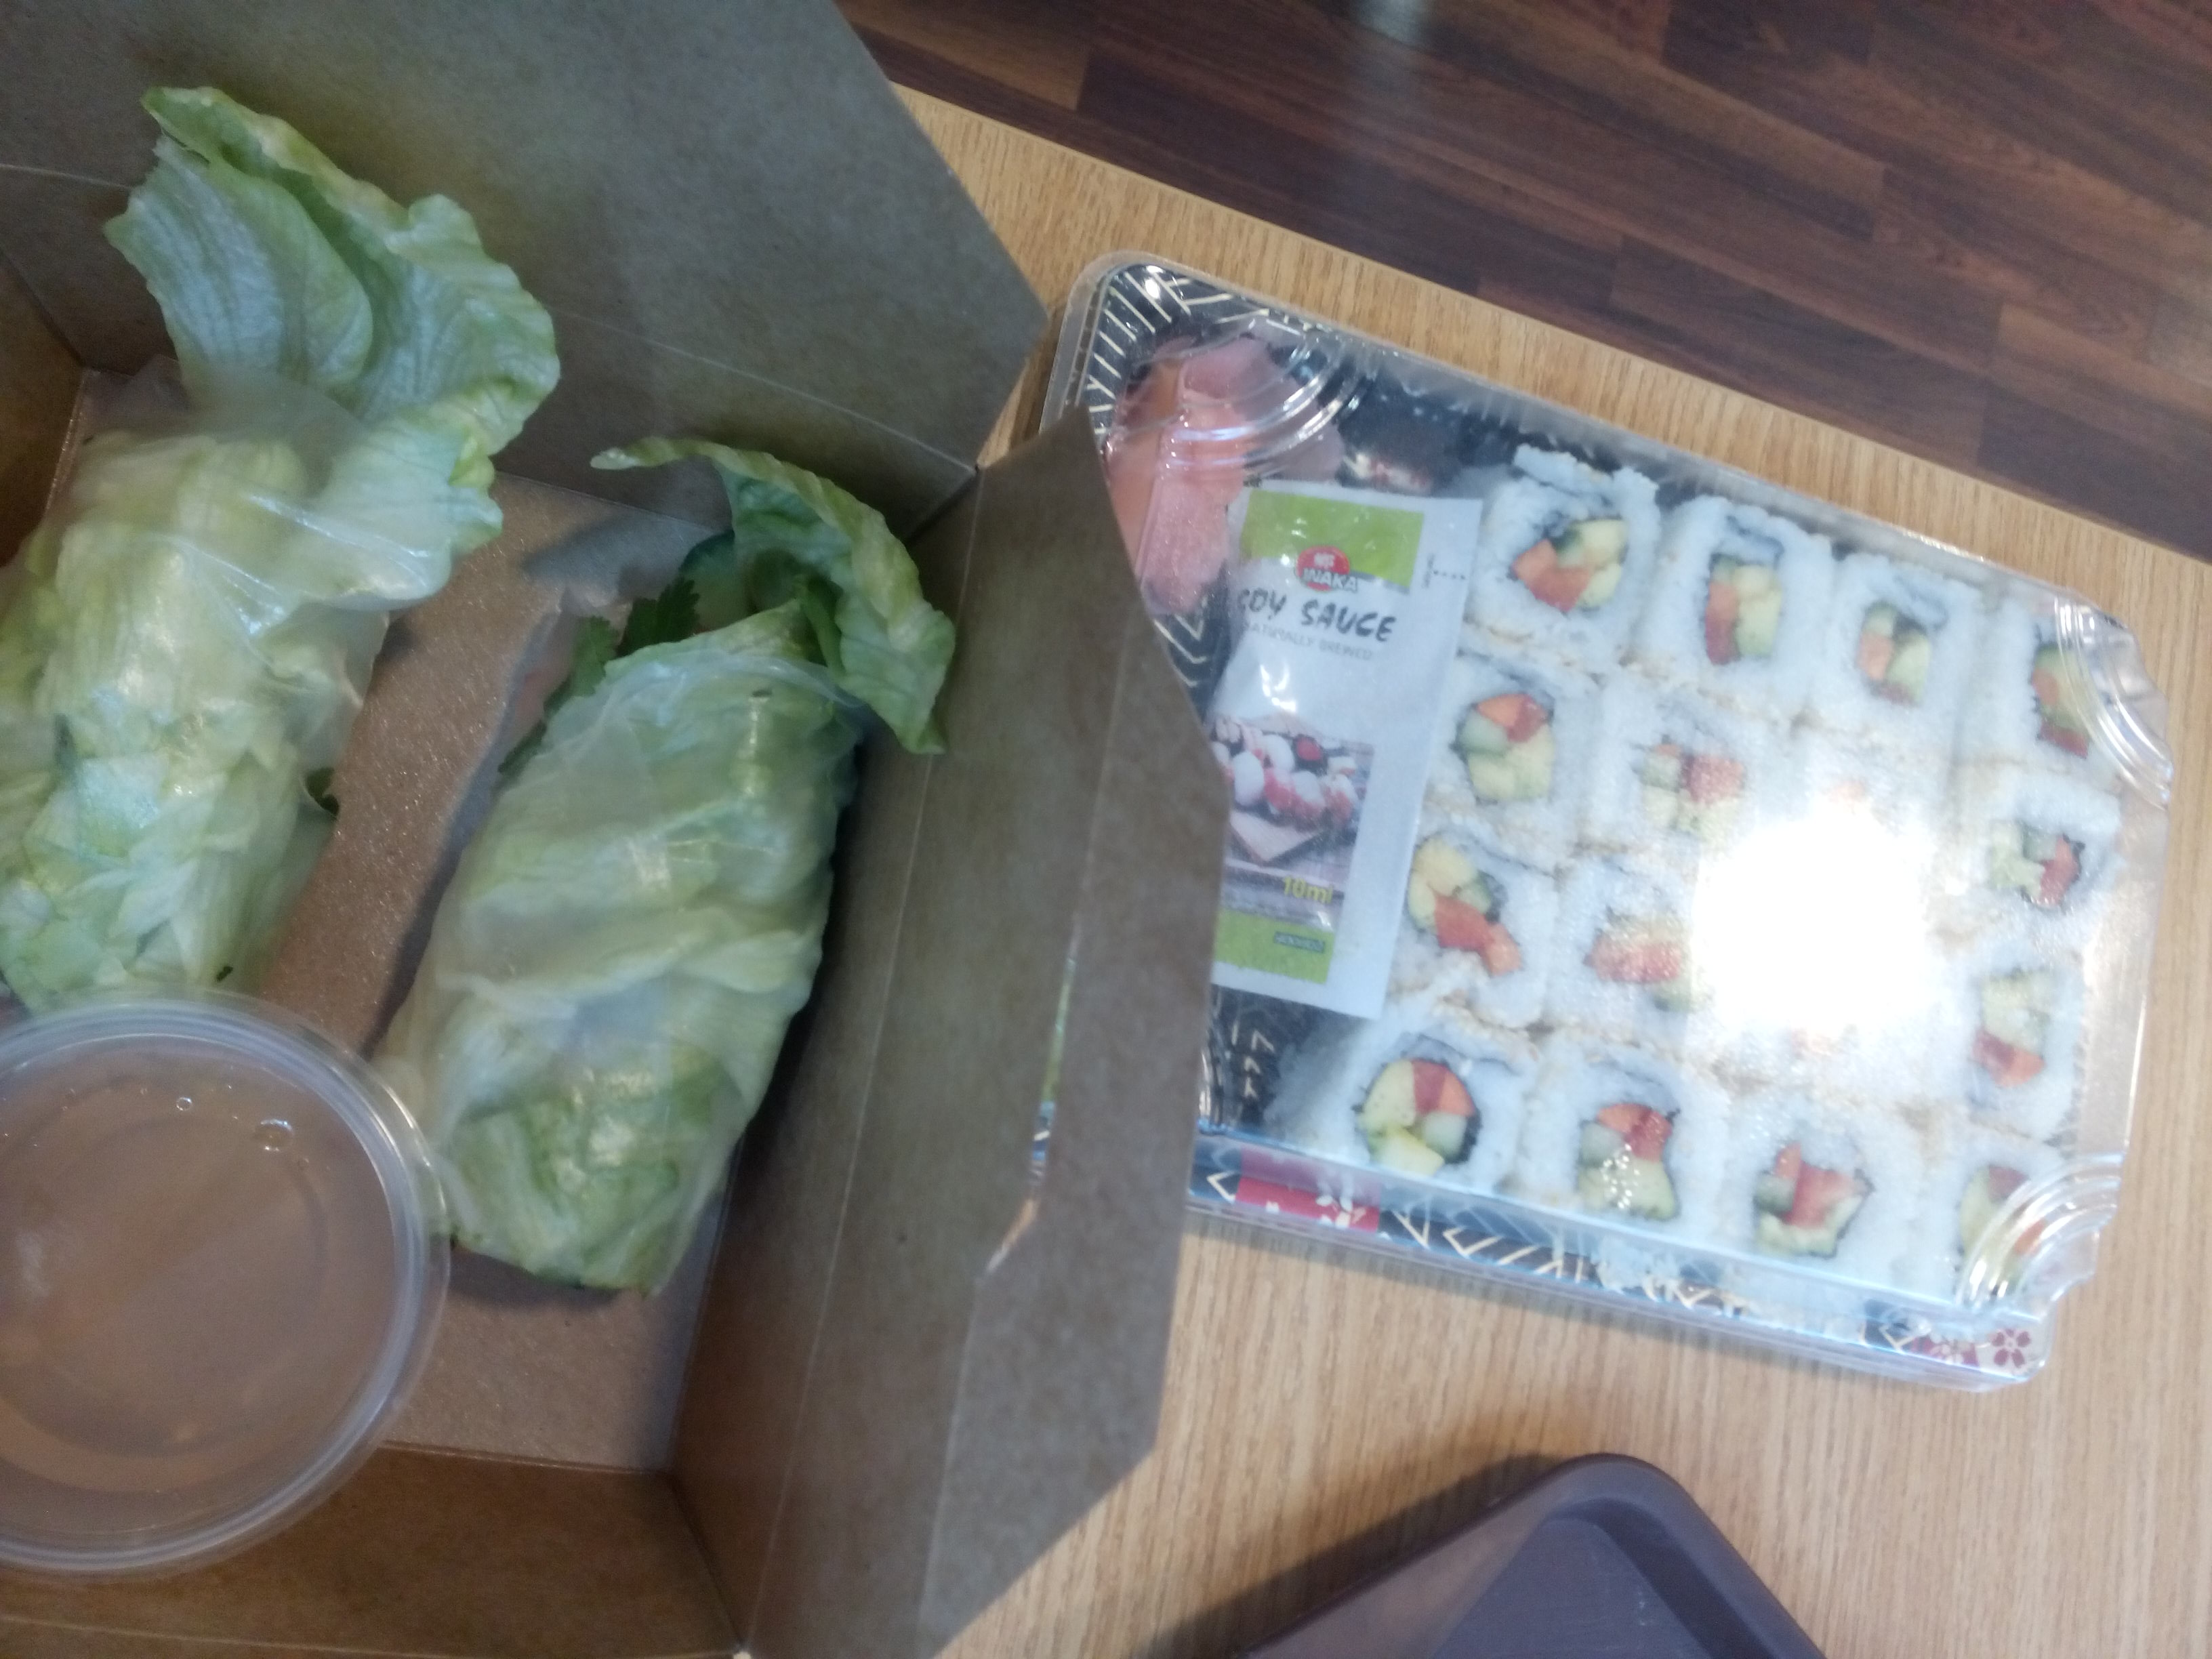 A box containing rolls of lettuce, beside a plastic tray full of colourful sushi rolls